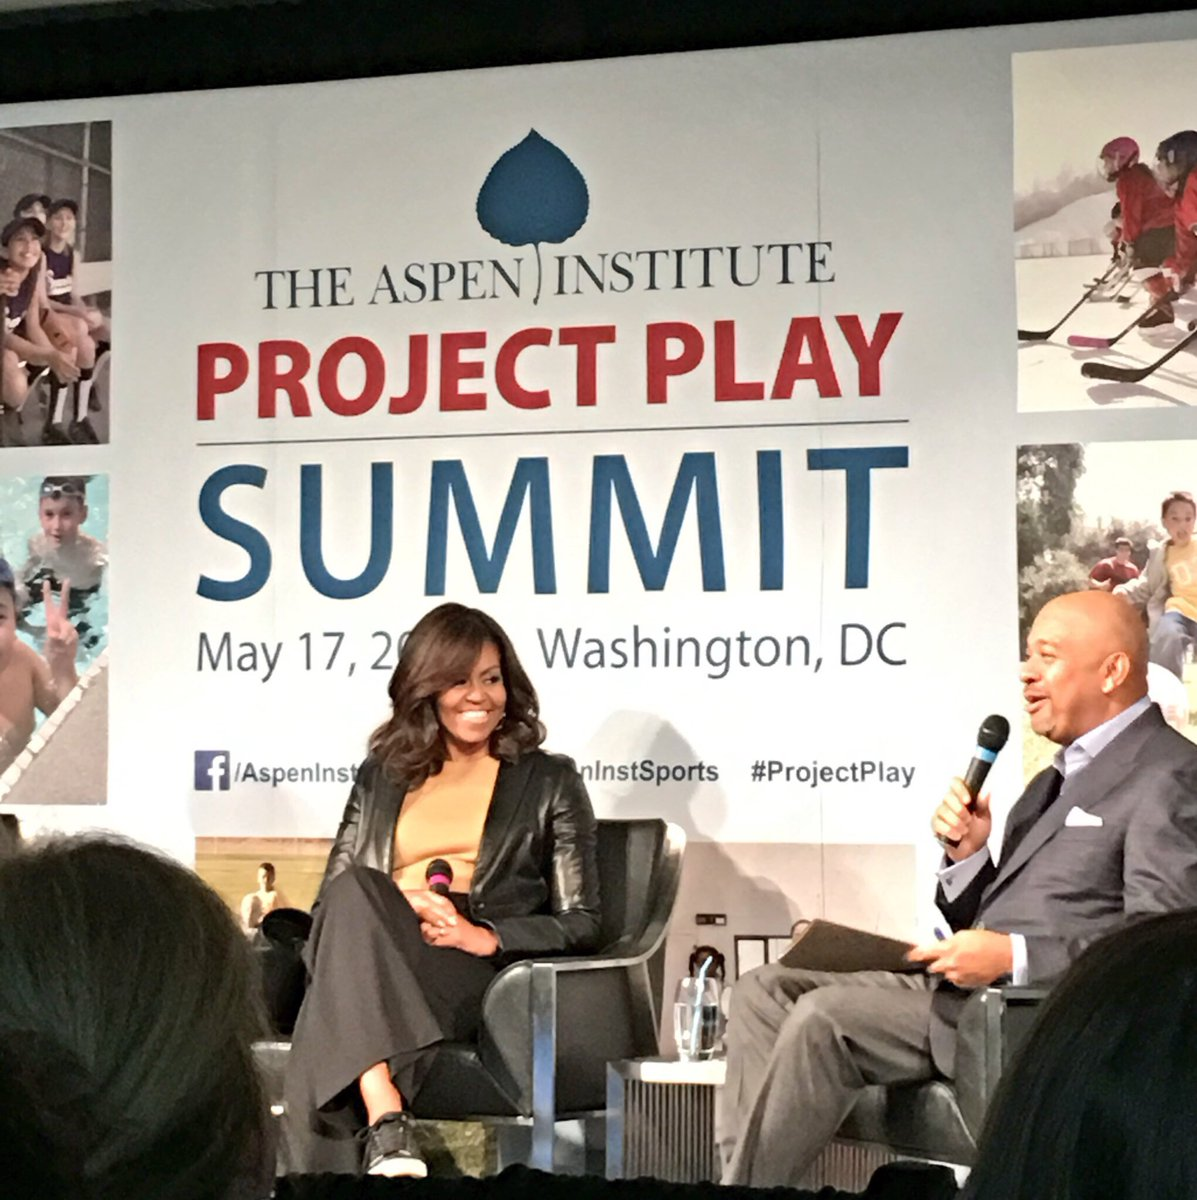 Loved hearing from @FLOTUS at the #ProjectPlay Summit! Such a great role model and advocate for healthy lifestyles. https://t.co/kwDp6qdDVS